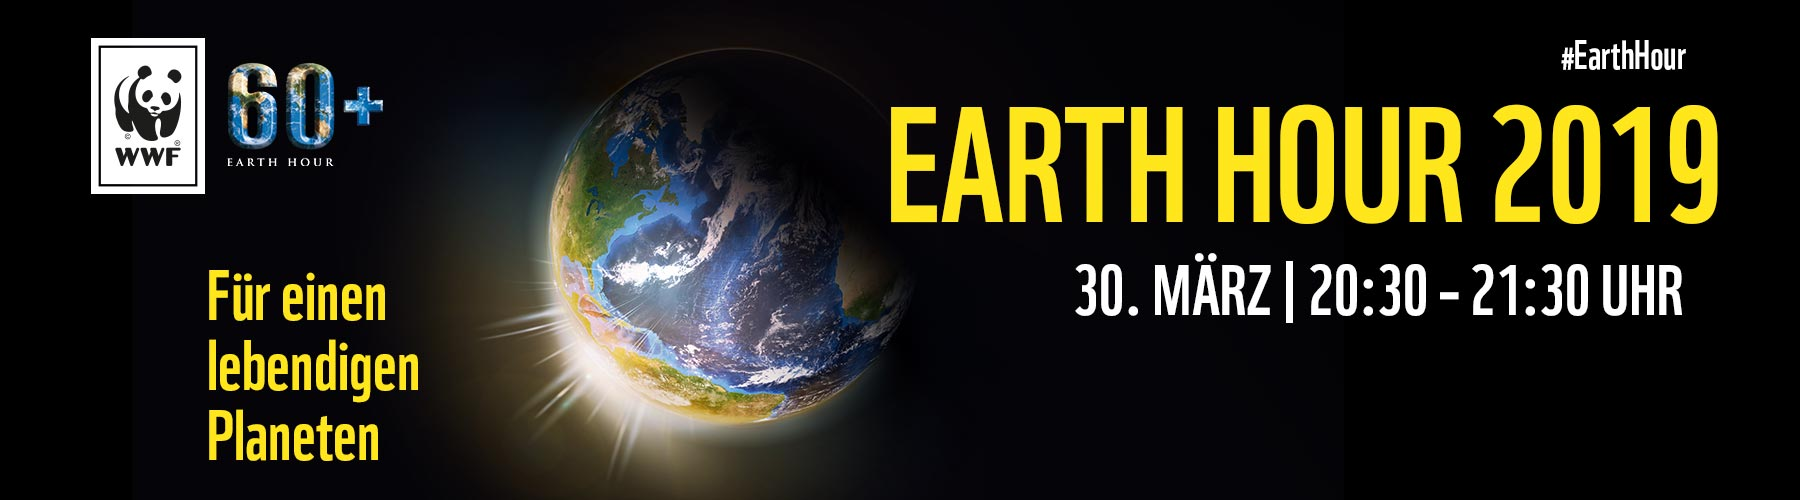 1800x500 Earth Hour 2019 Banner c wwf